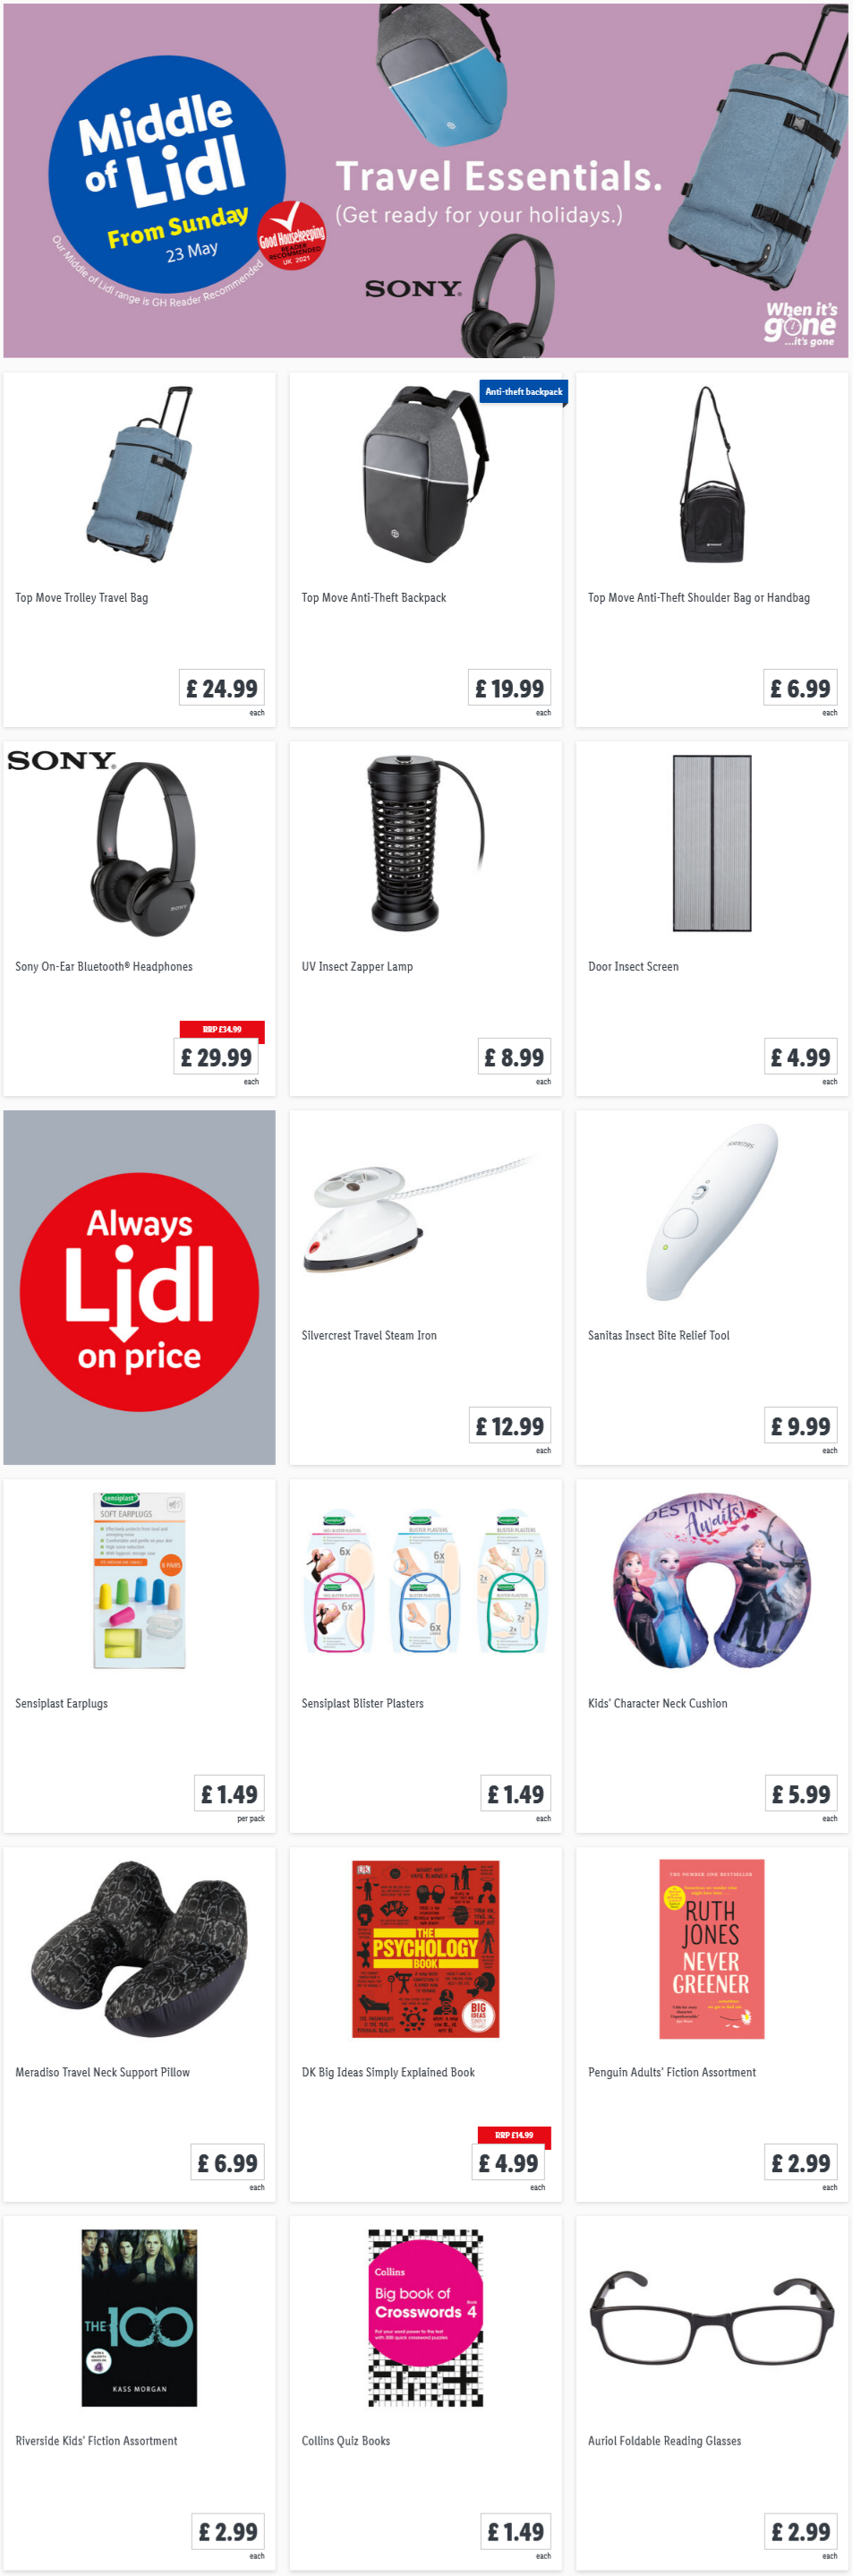 LiDL Travel Essential from 23rd May 2021 LiDL Sunday Offers